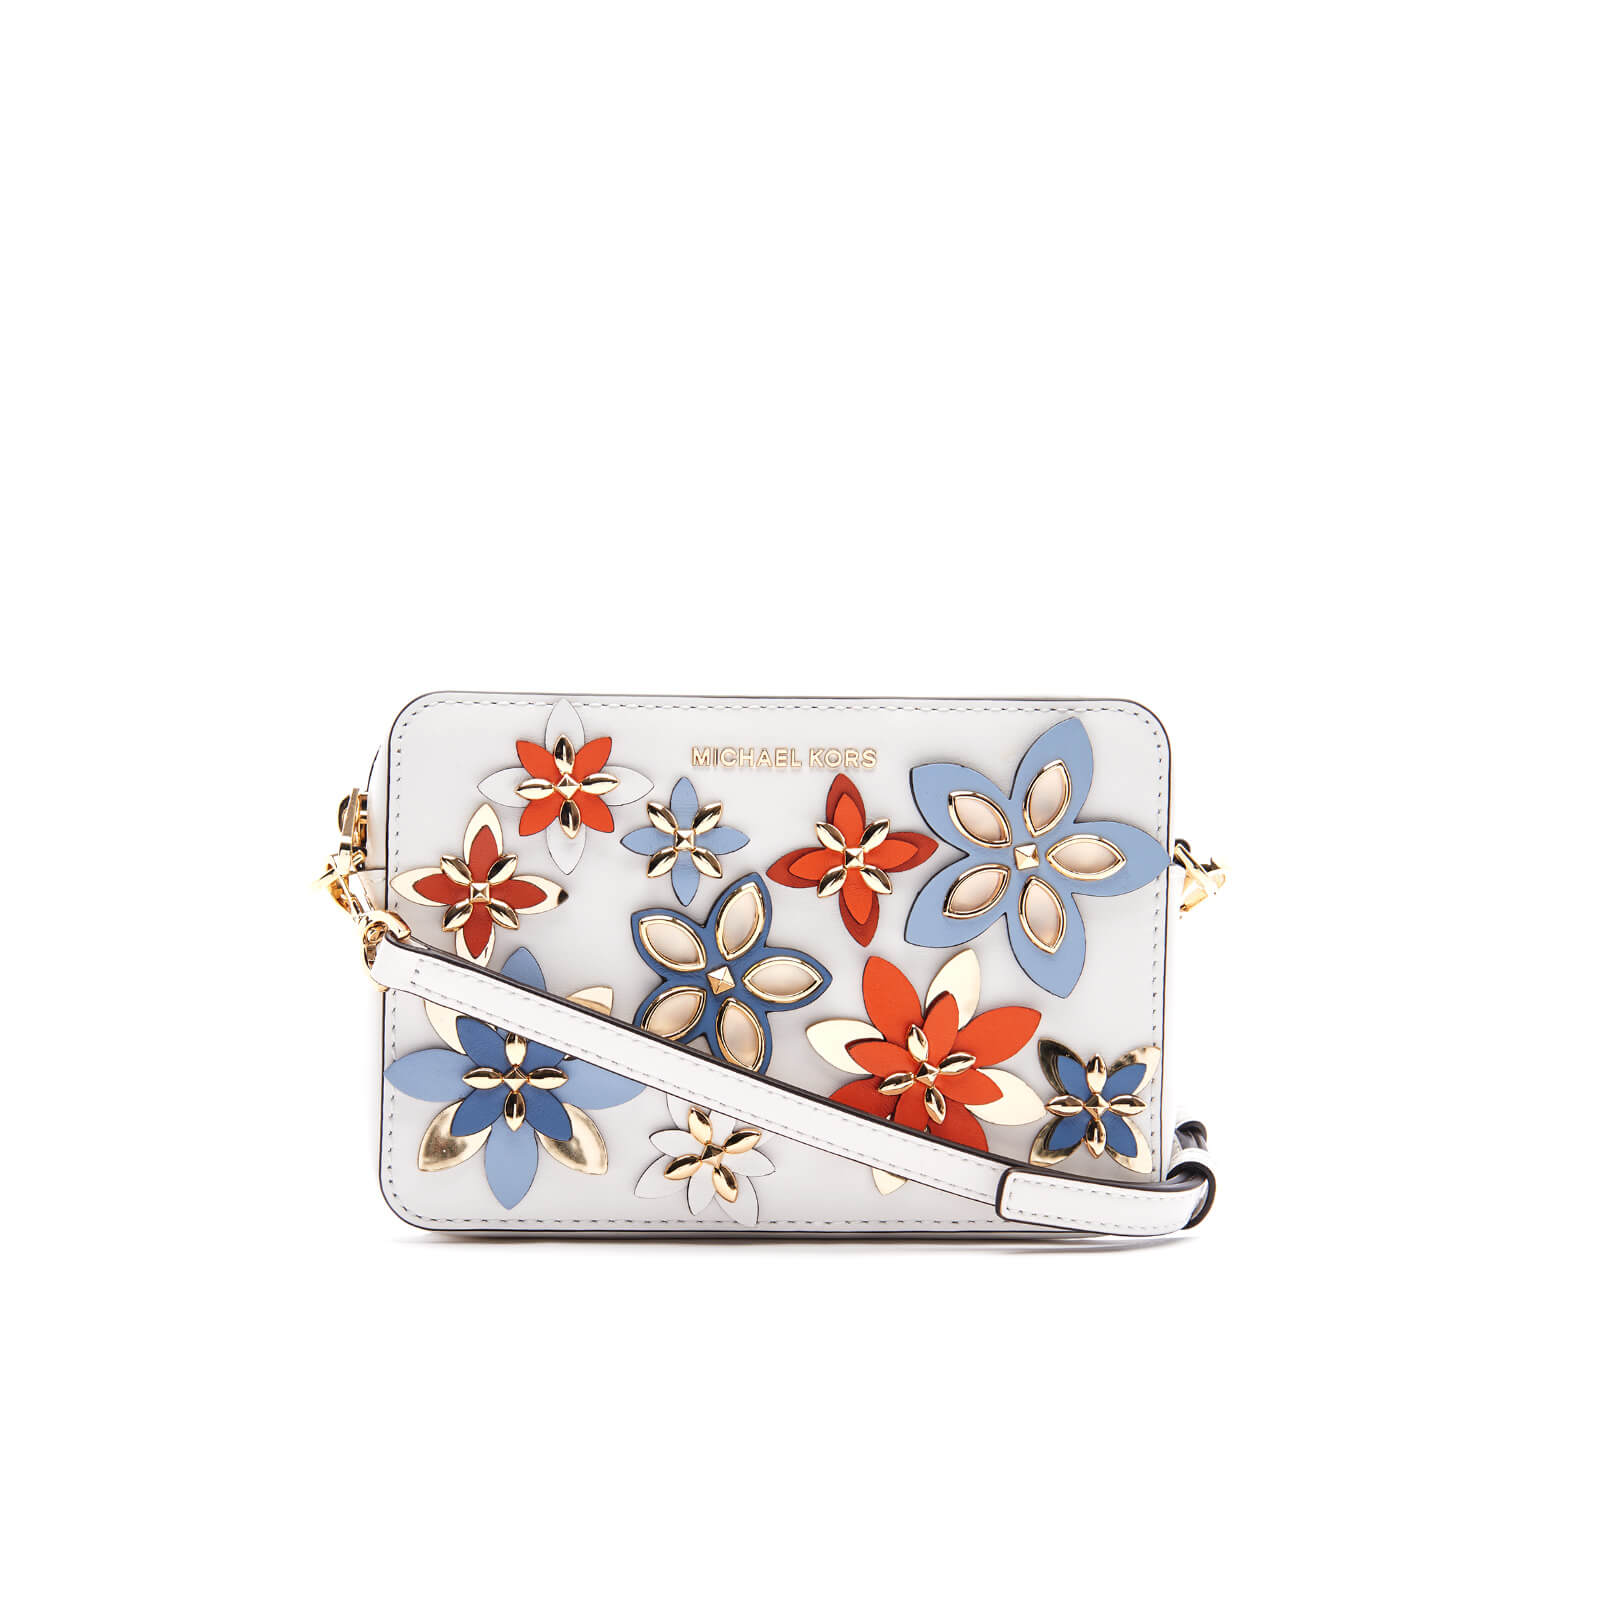 f624afdcab5d ... MICHAEL MICHAEL KORS Women s Flowers Pouches Mid Camera Bag - Optic  White Multi